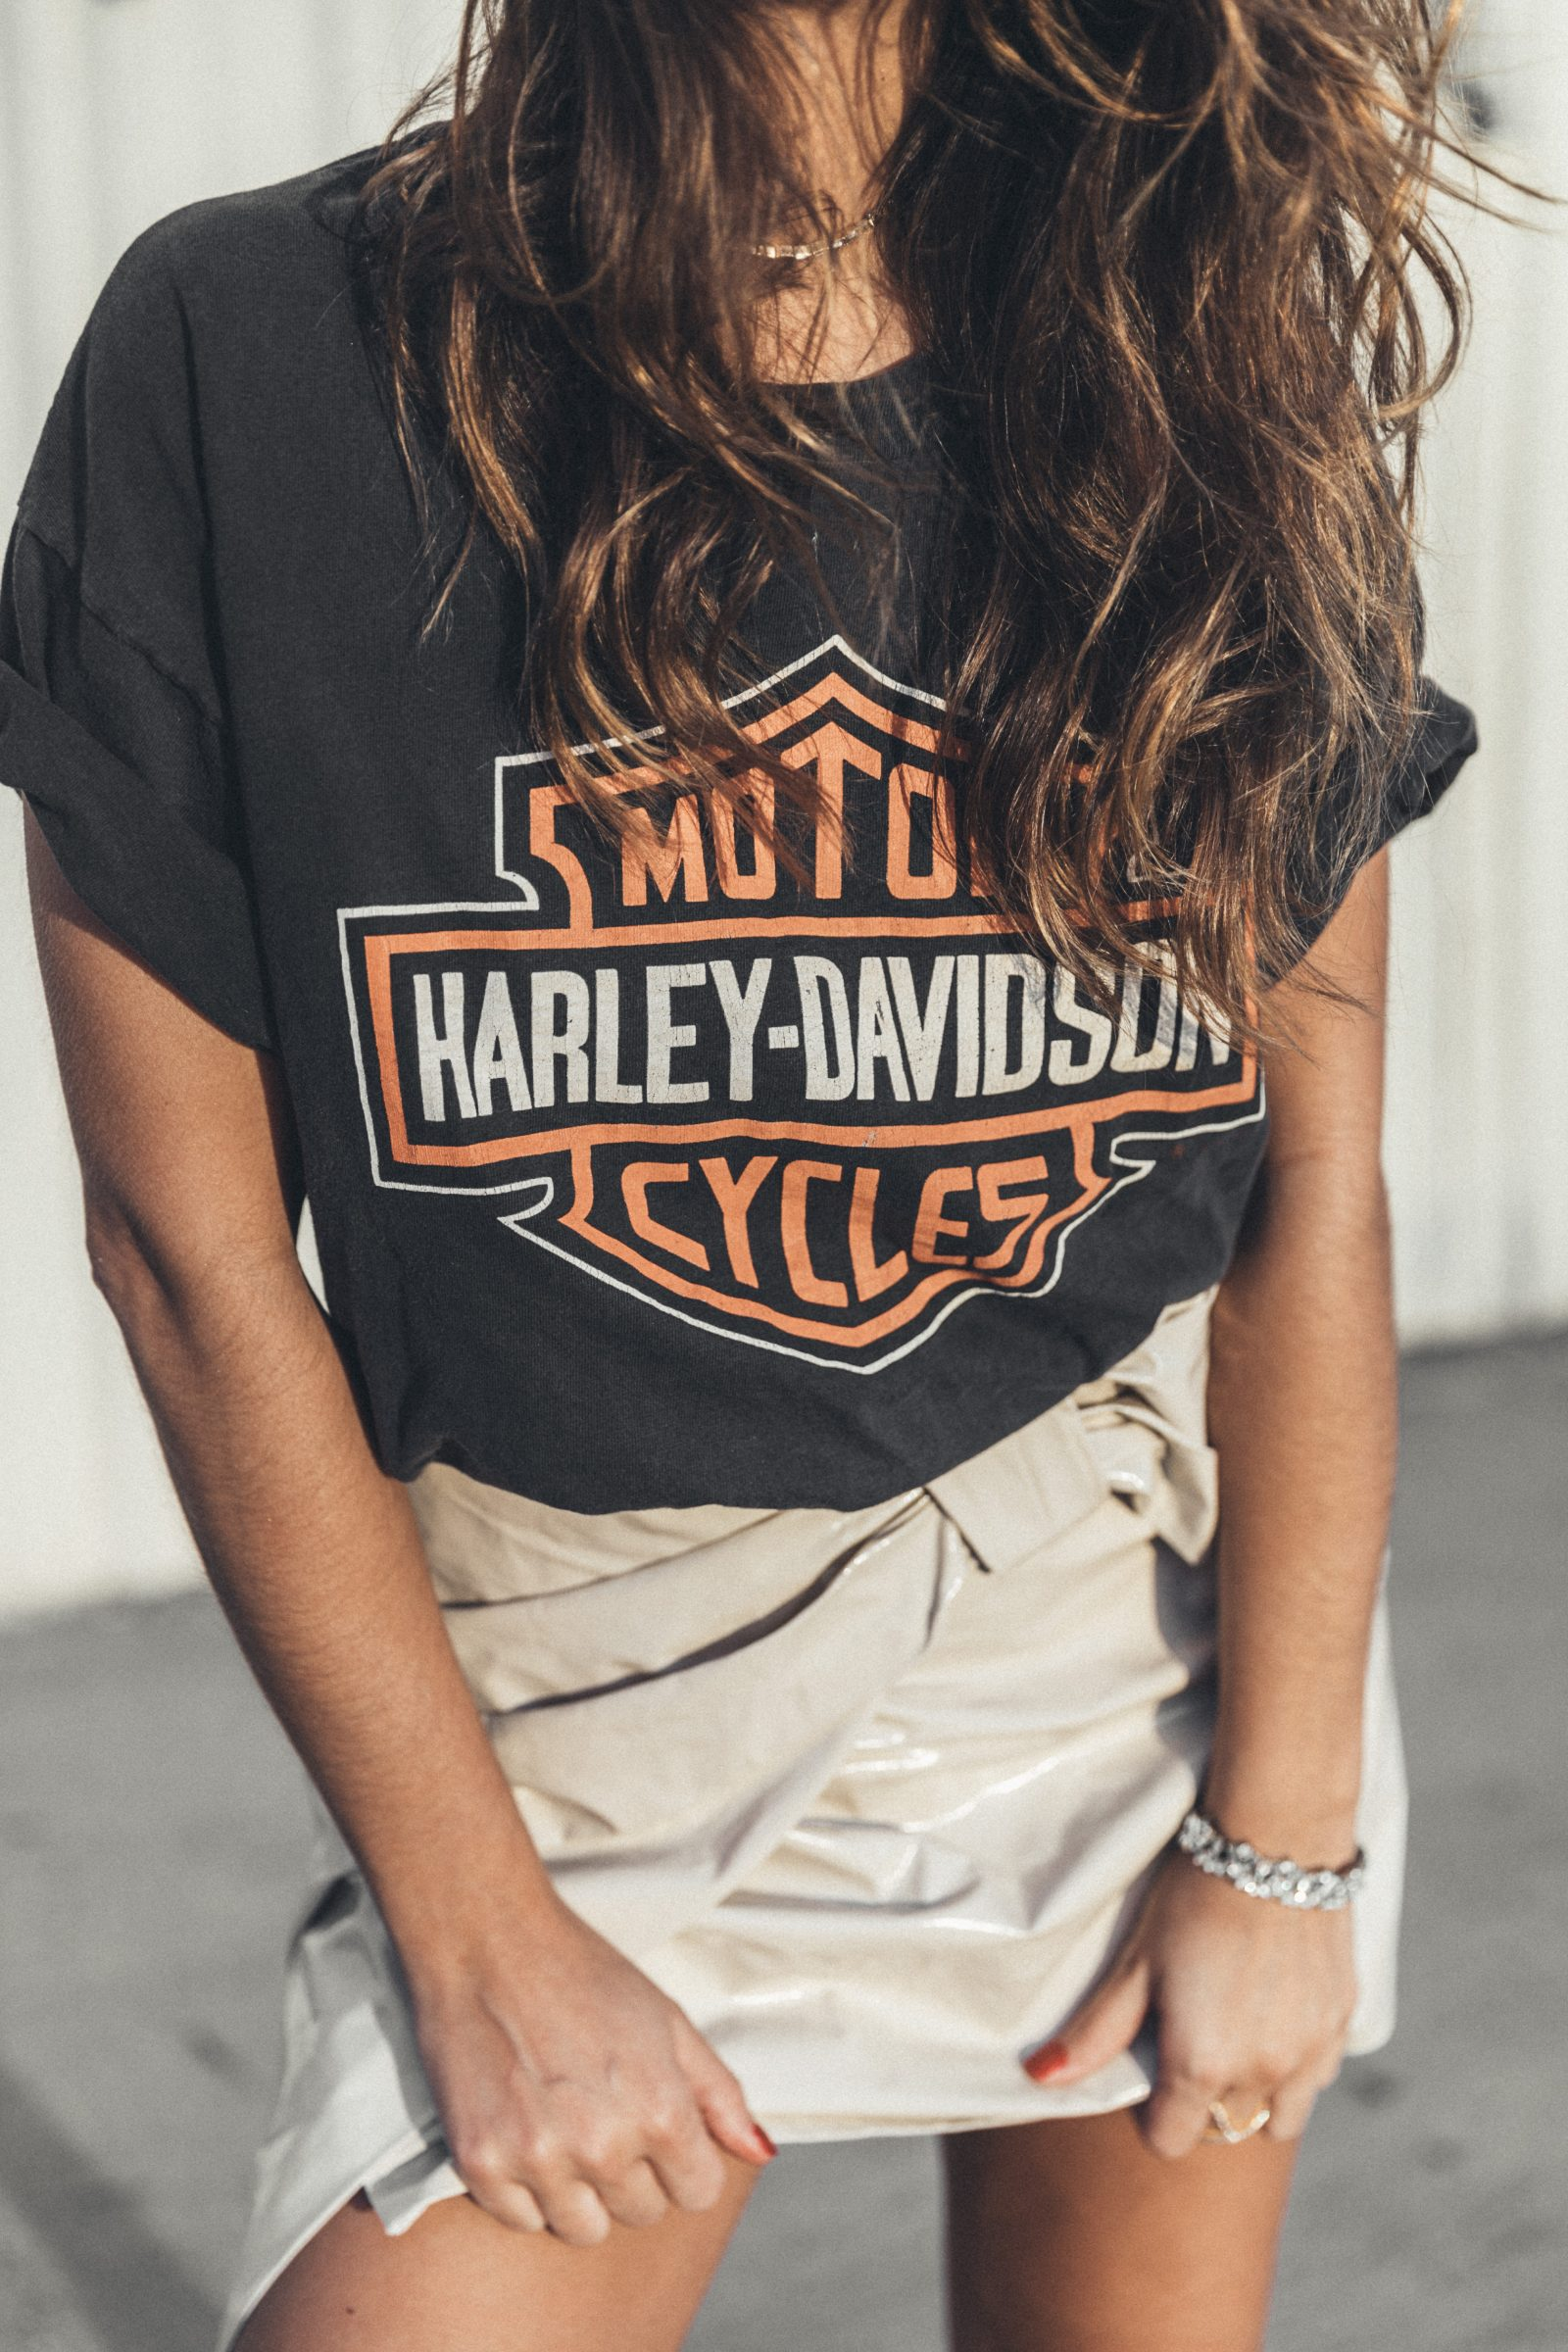 isabel_marant_skirt-harley_davison_vintage_tee-snake_boots-red_boots-bauble_bar-outifit-street_style-outfits-collage_vintage-106